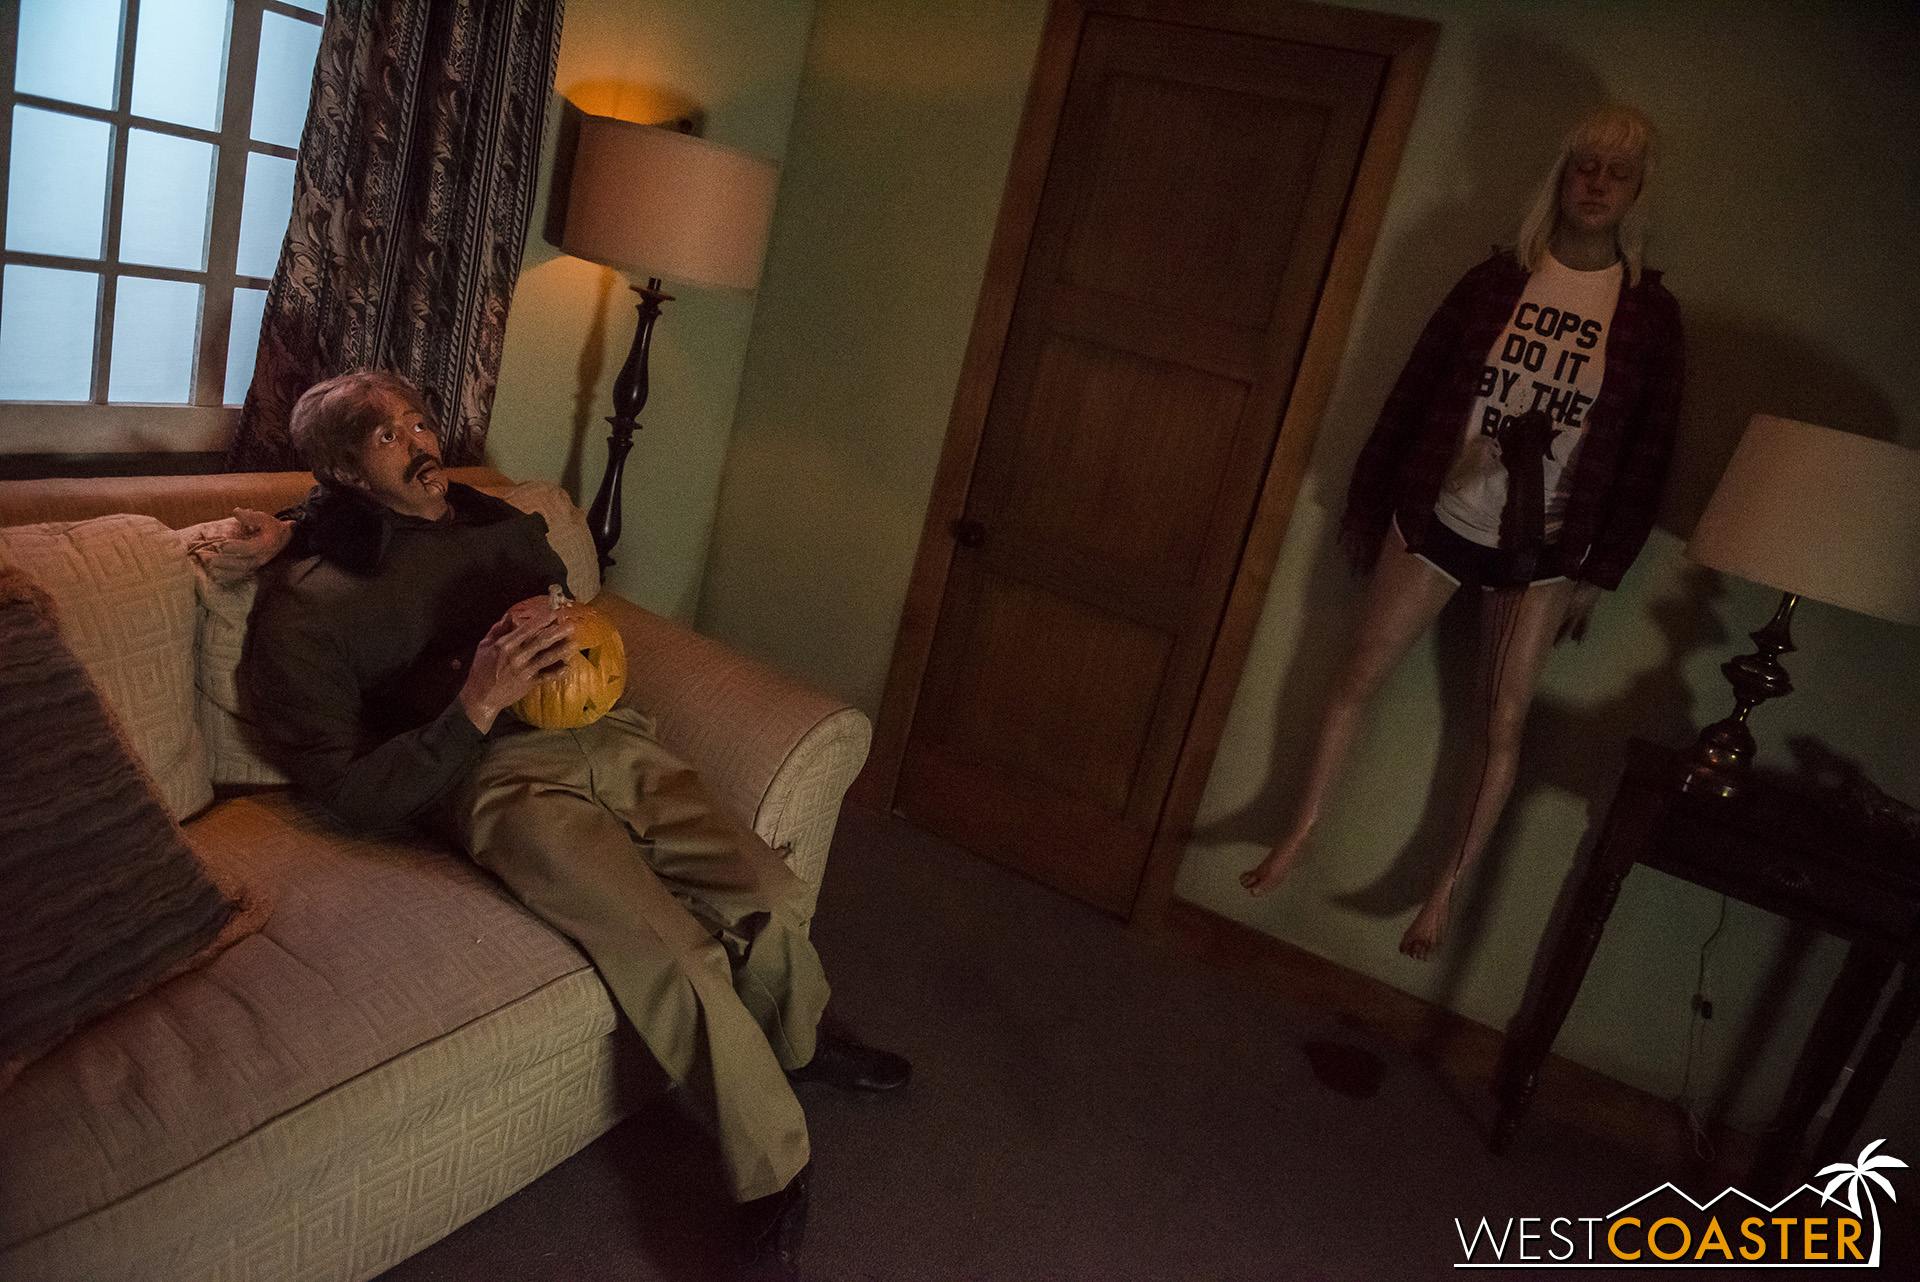 Mannequins serve as distractions for the scareactor bursting out of the door.